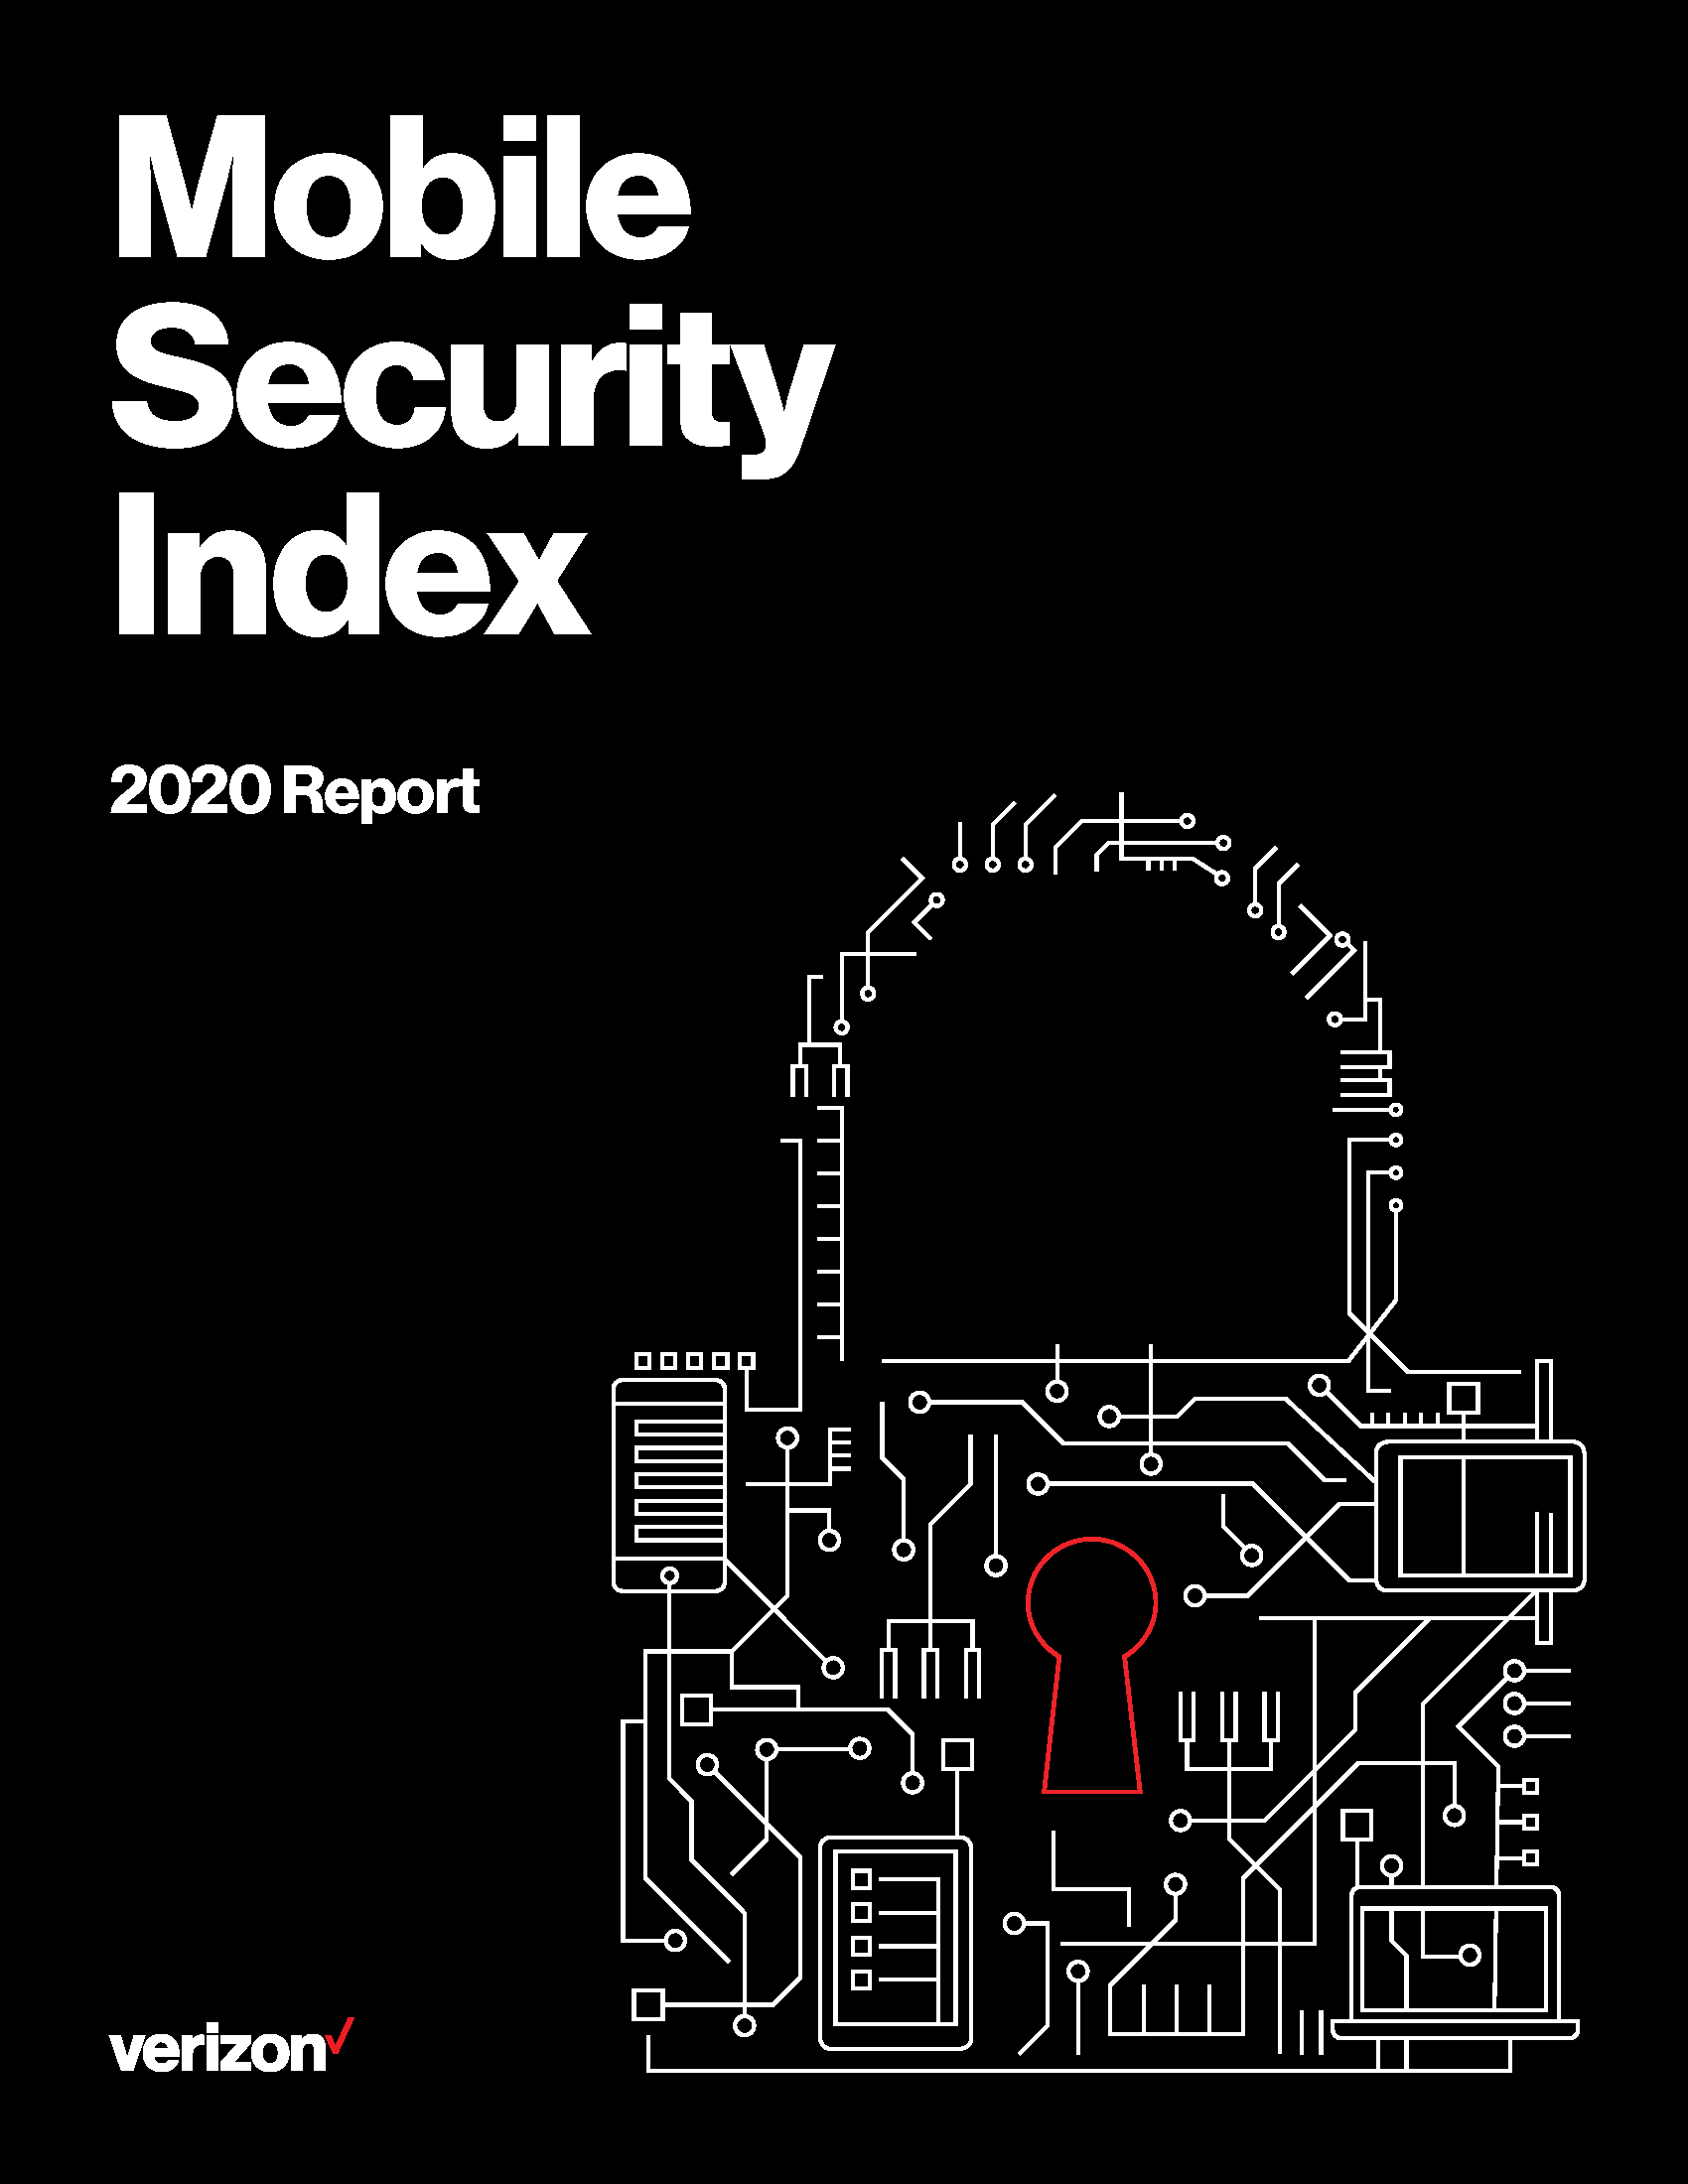 Mobile Security Index 2020